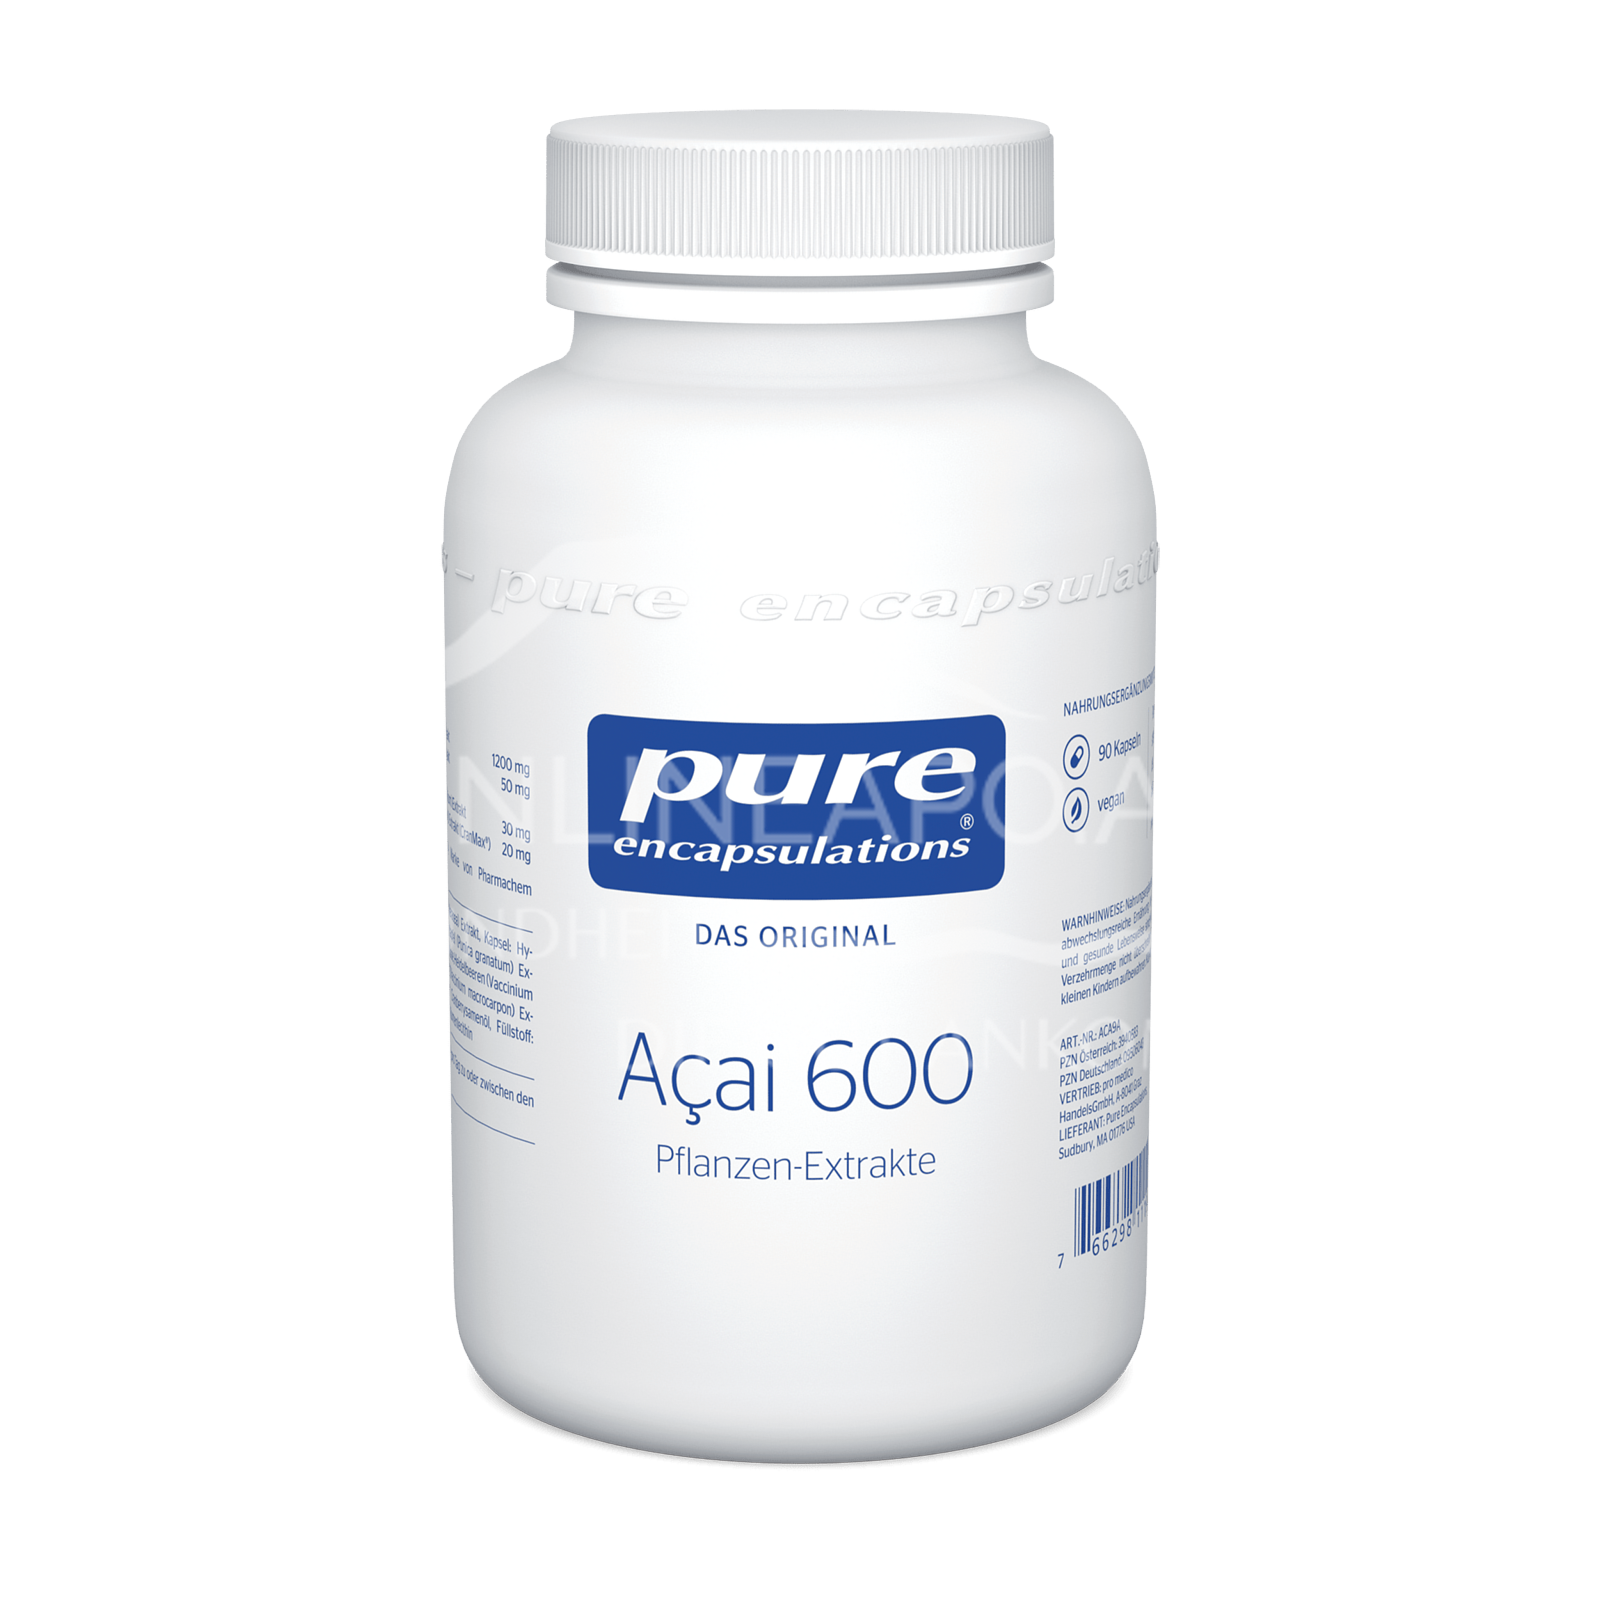 pure encapsulations® Açai 600